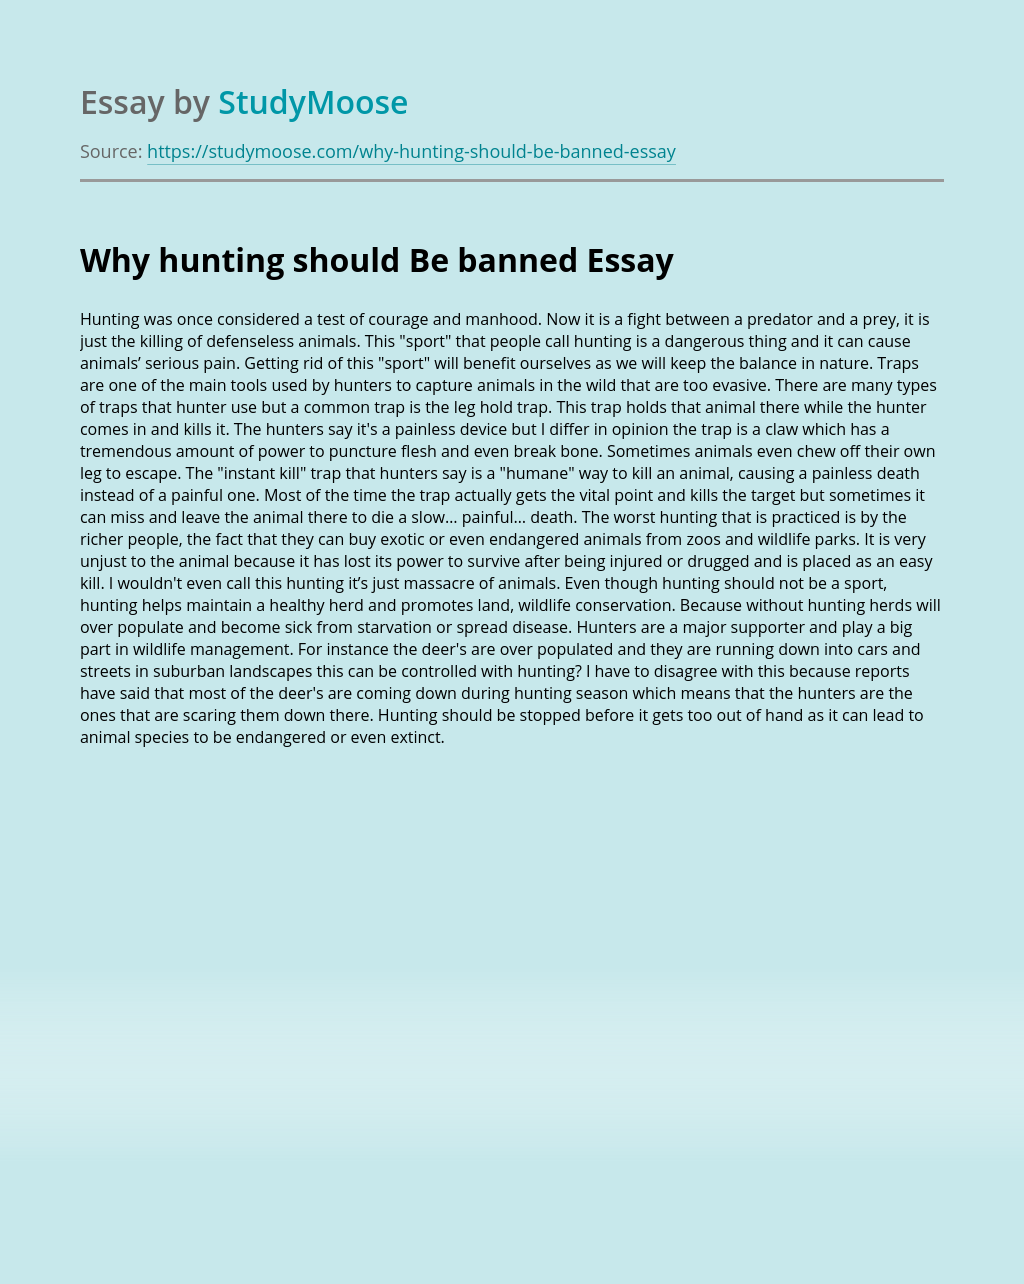 Why hunting should Be banned